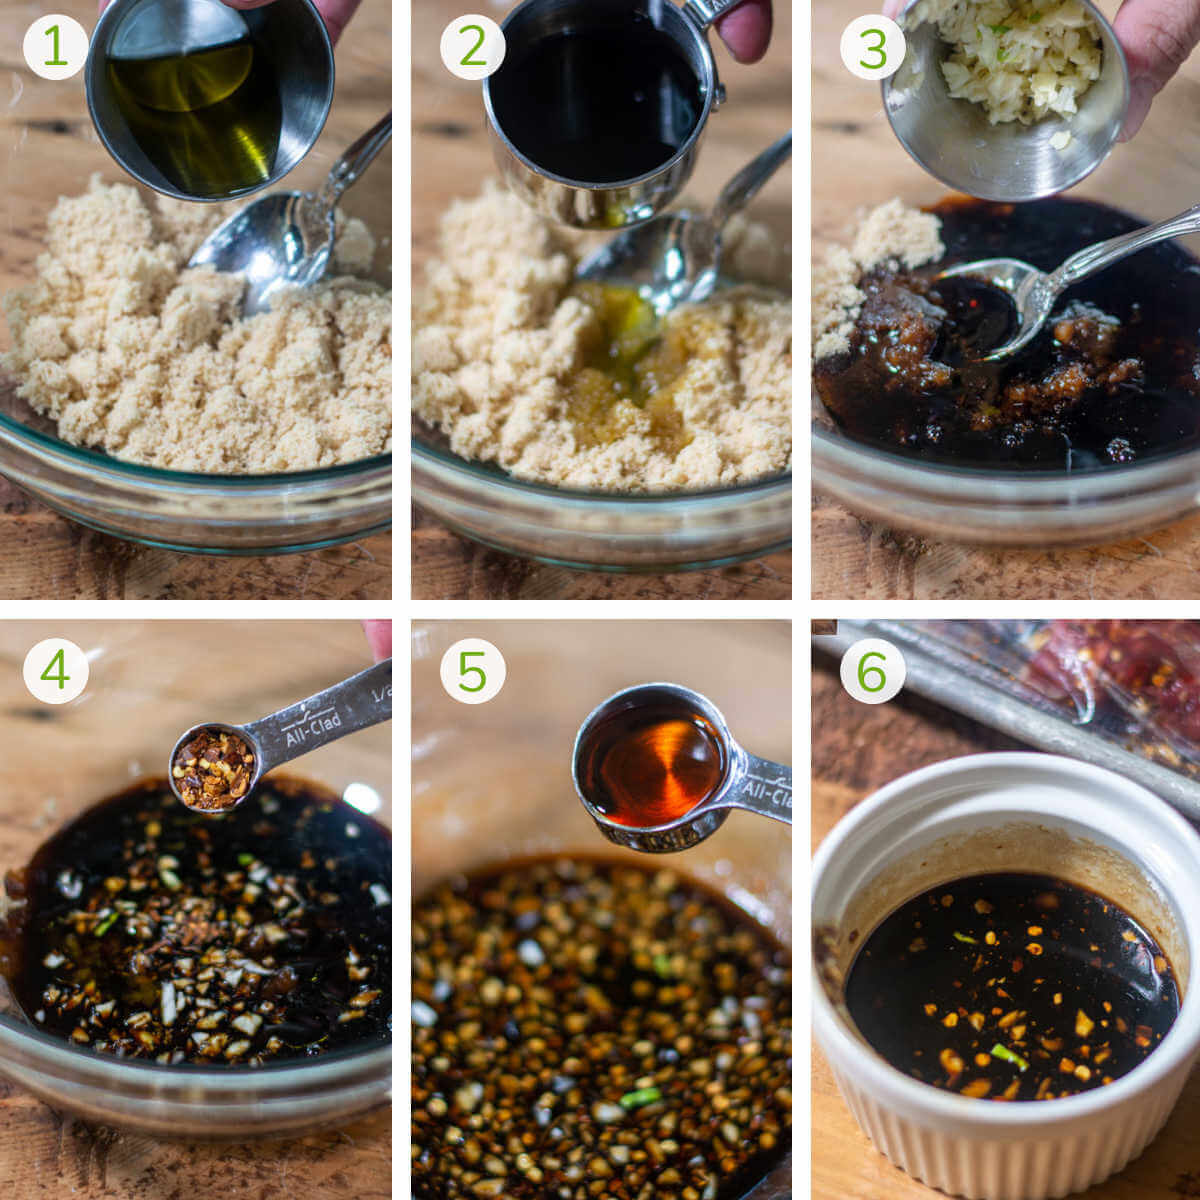 photos showing adding all of the ingredients for the marinade in a glass bowl.